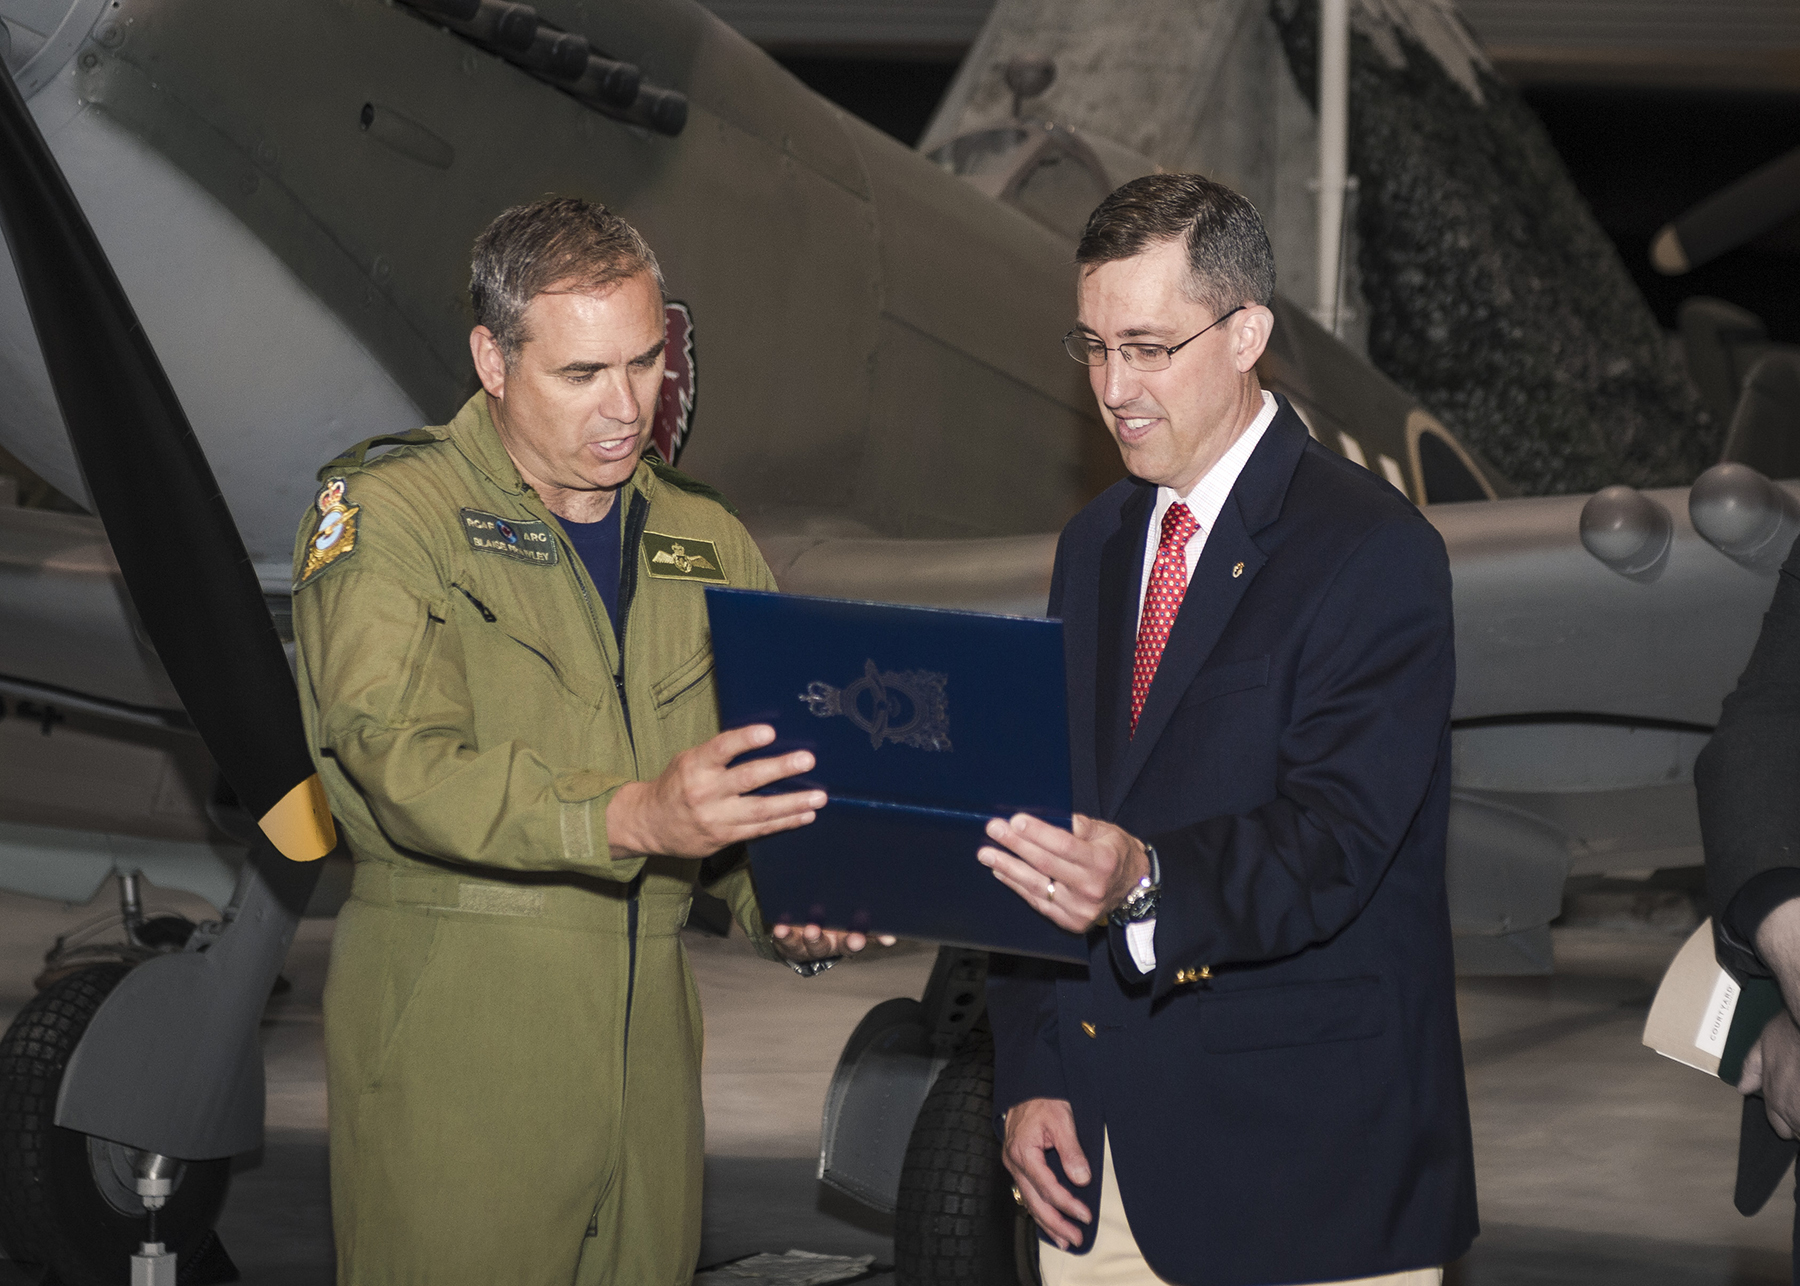 A man wearing an olive green flight suit over a navy blue T-shirt and a man wearing a dark blue blazer, cream pants and a shirt and tie, look at the contents of a dark blue leather-covered folder with an image of a gold crest on the front. They are indoors; behind them is an aircraft.